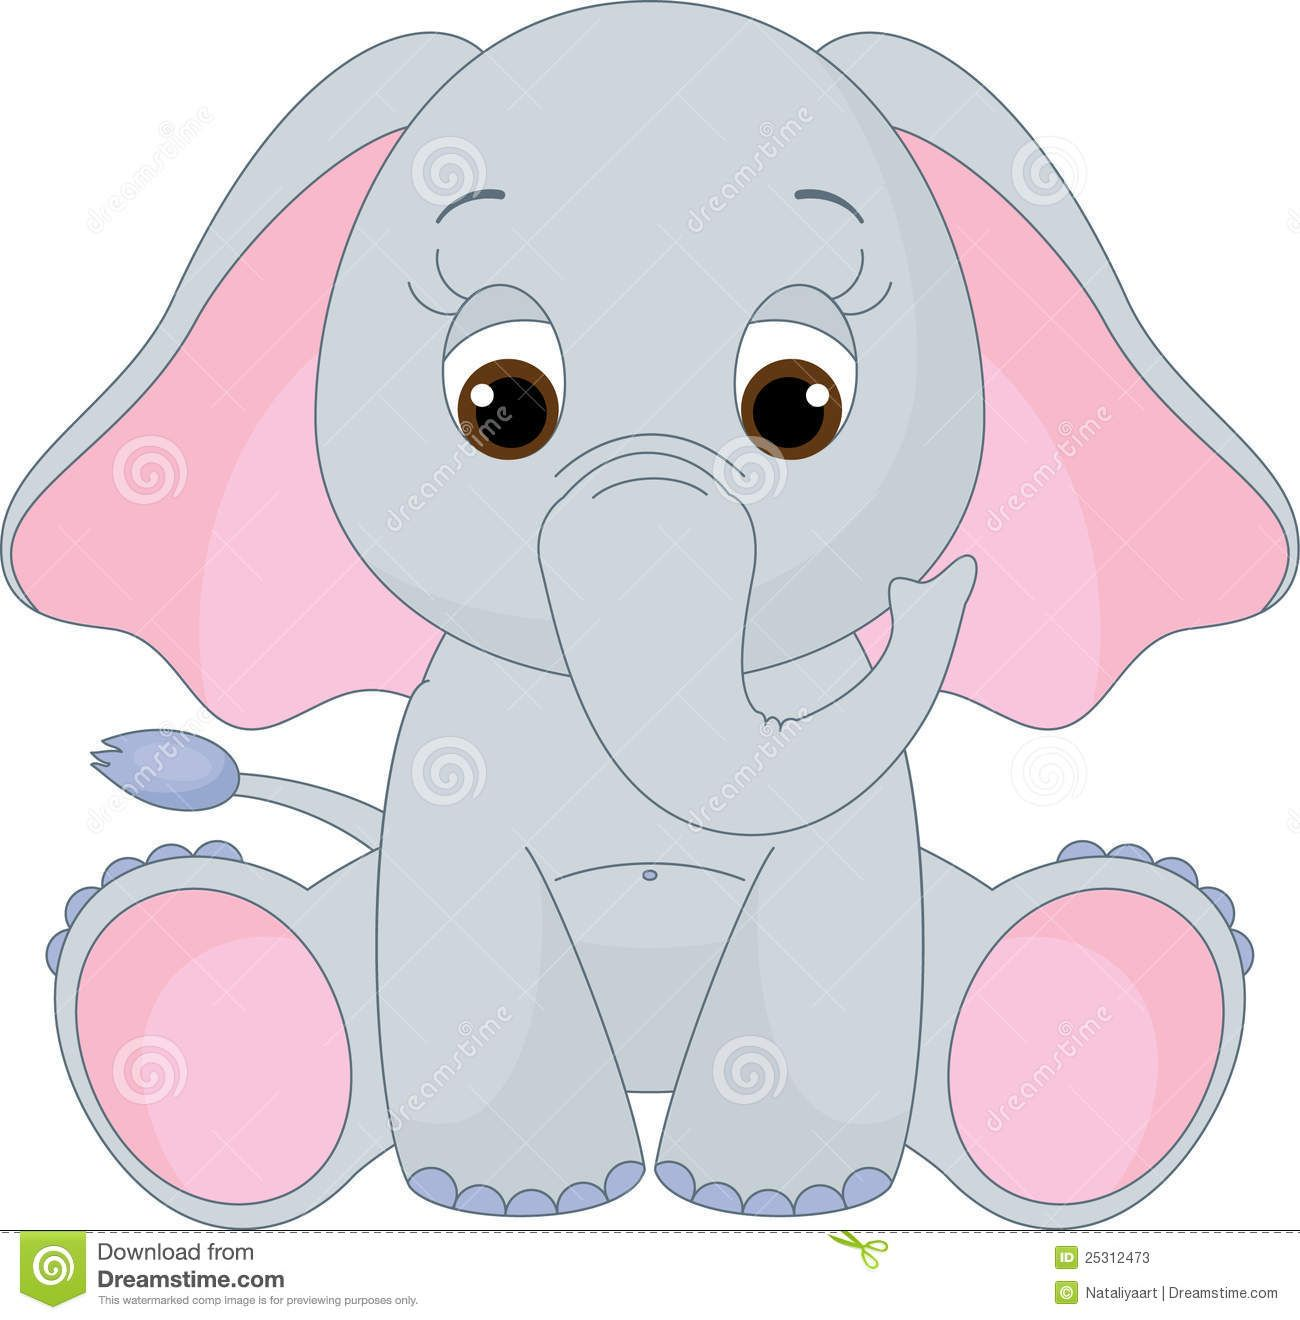 free baby elephant clip art - Google Search | B-day party | Baby ... image free library